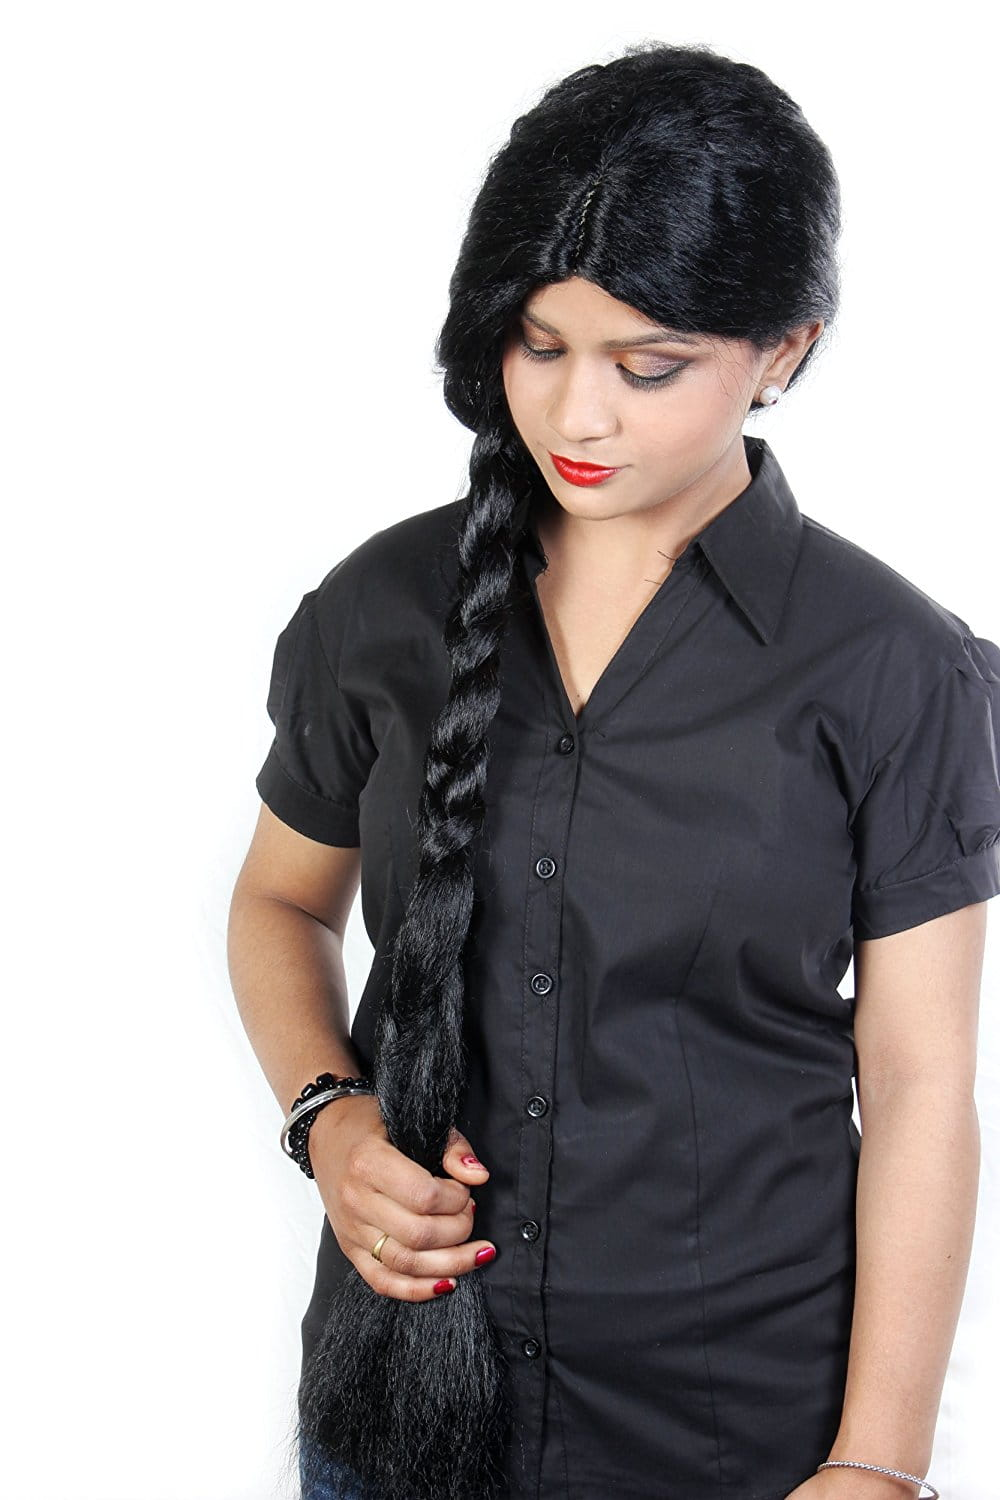 Ritzkart 31 Inch Indian Hi Long Women Black Hair Wig Straight Long